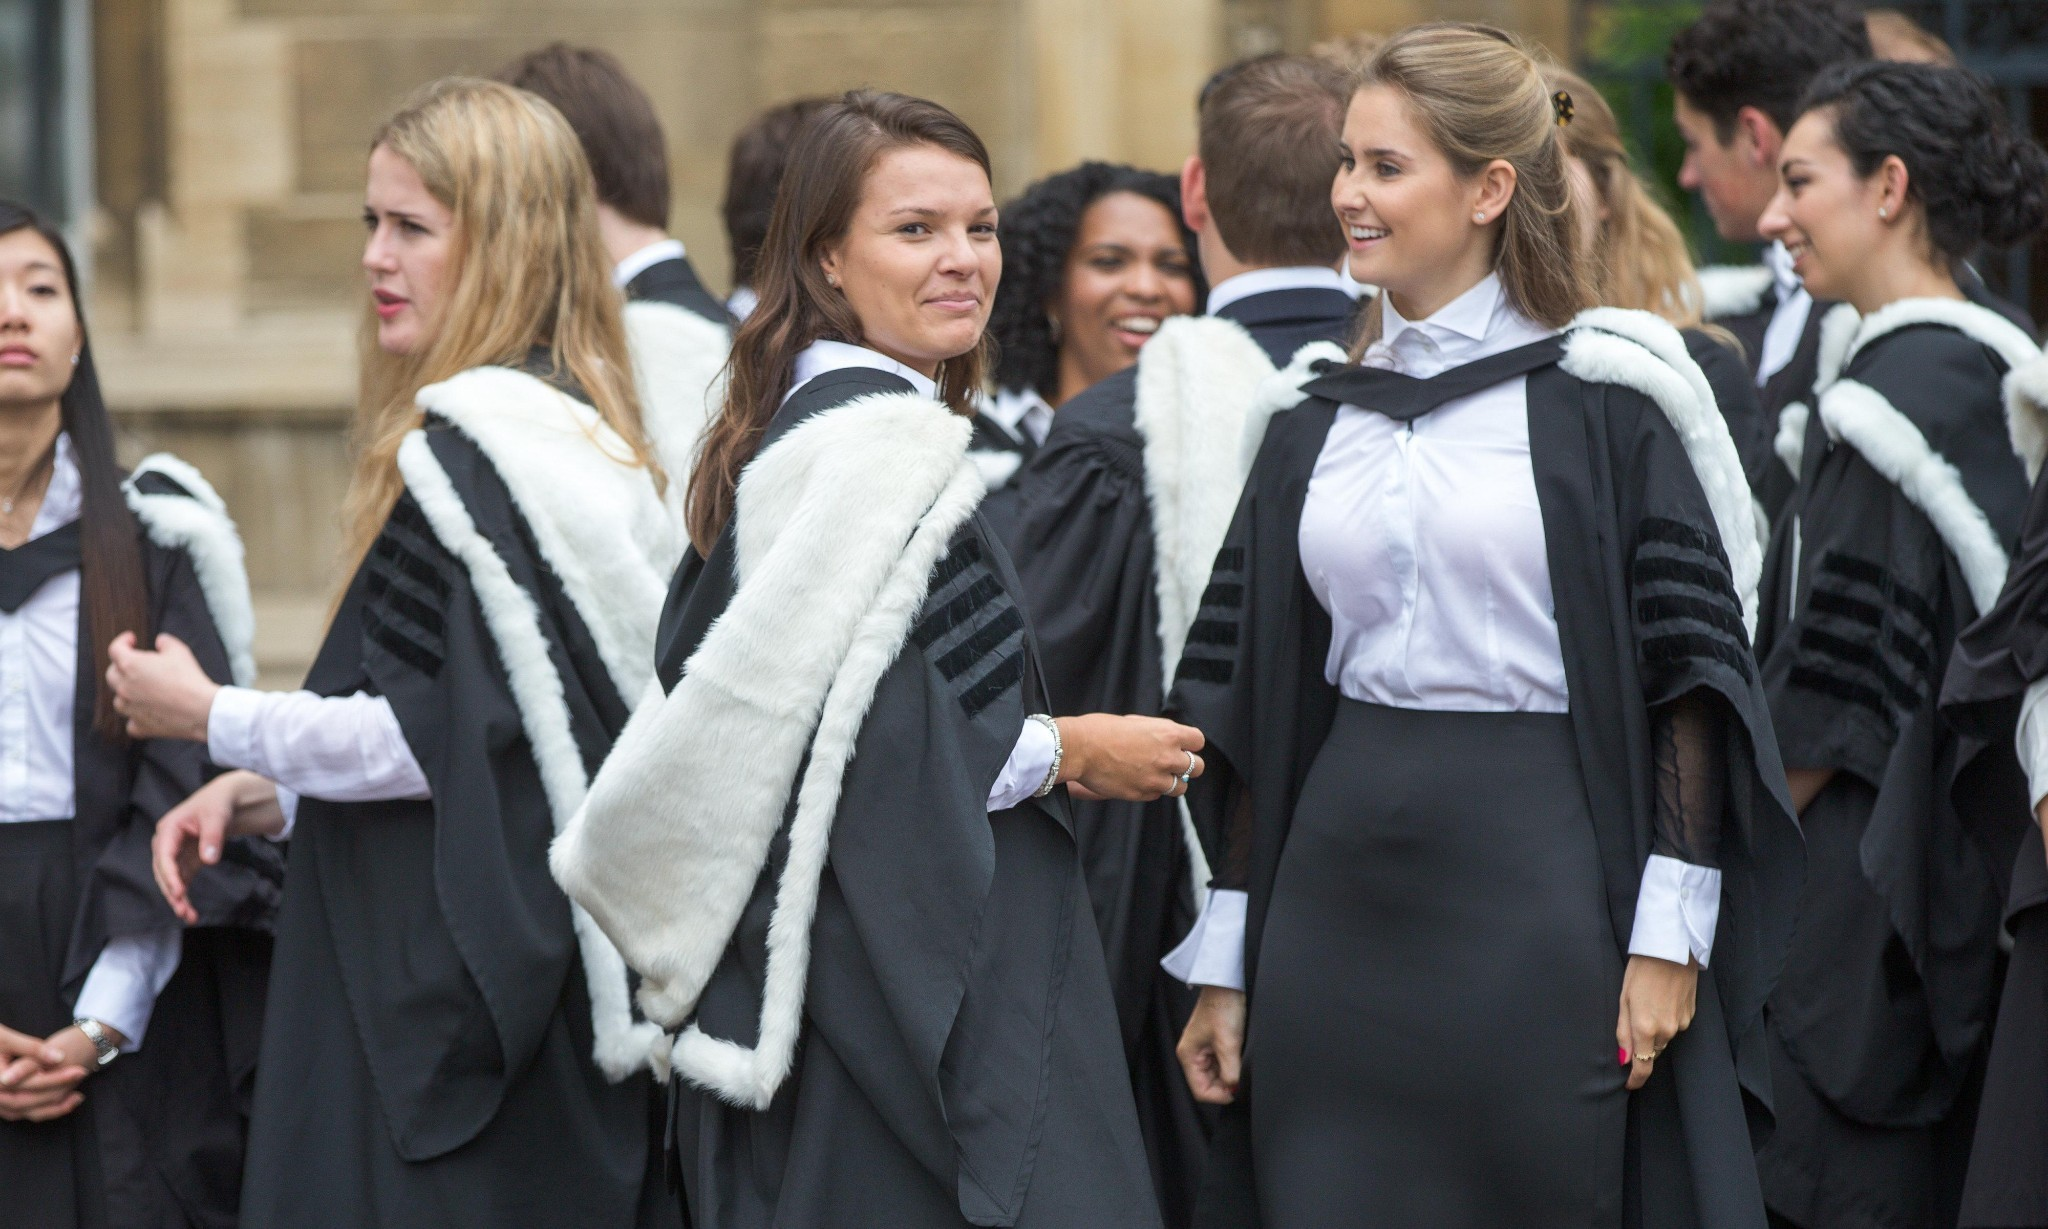 Huge increase in number of graduates 'bad for UK economy'